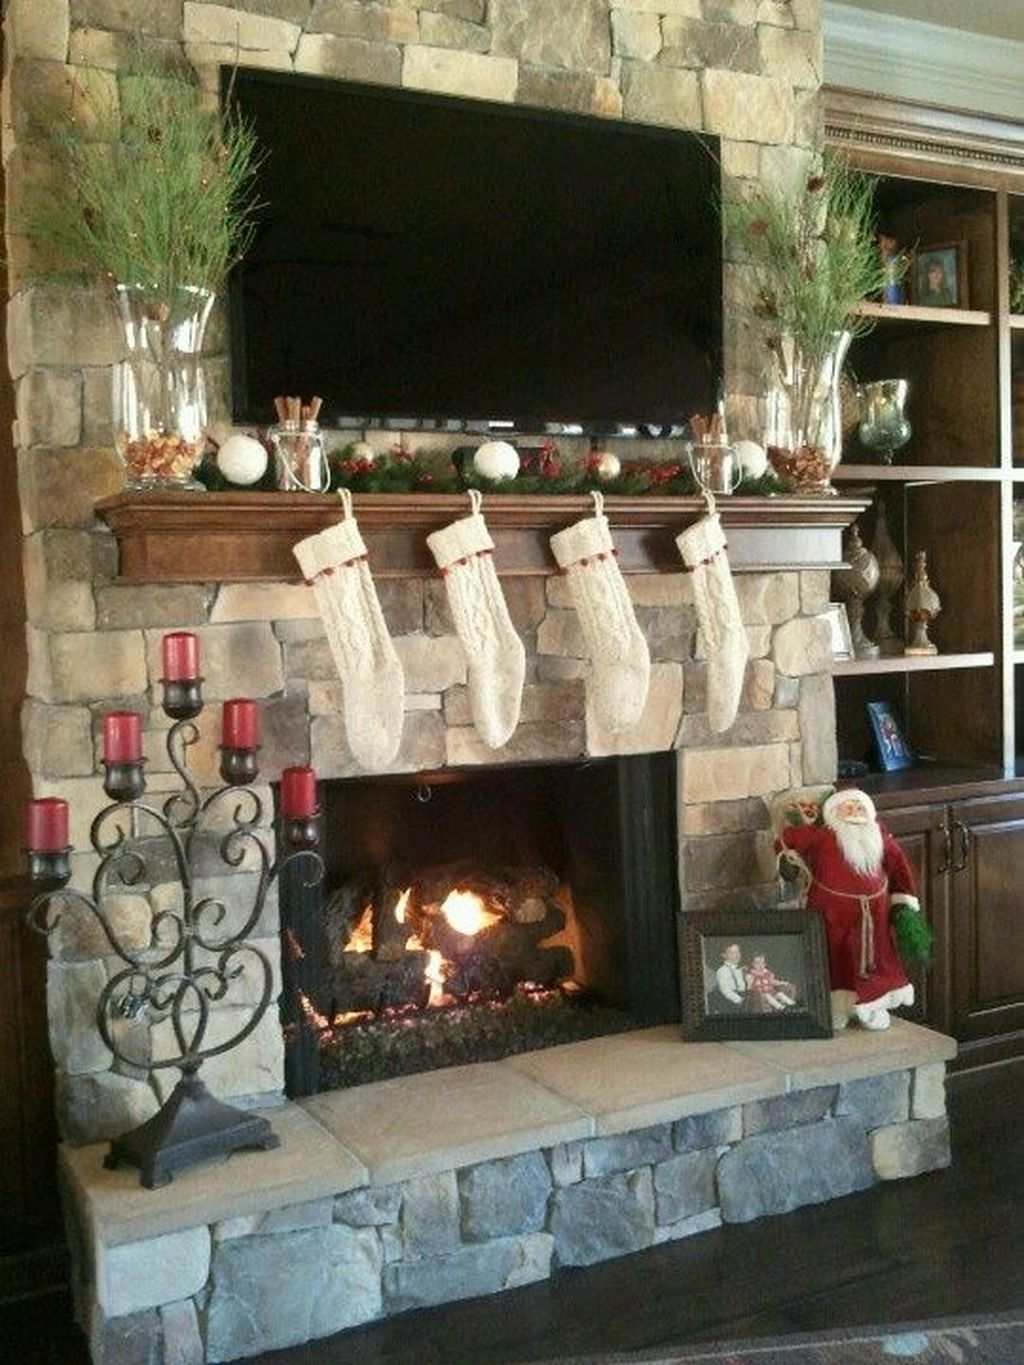 The Best Christmas Fireplace Decoration For Any Home Model 37